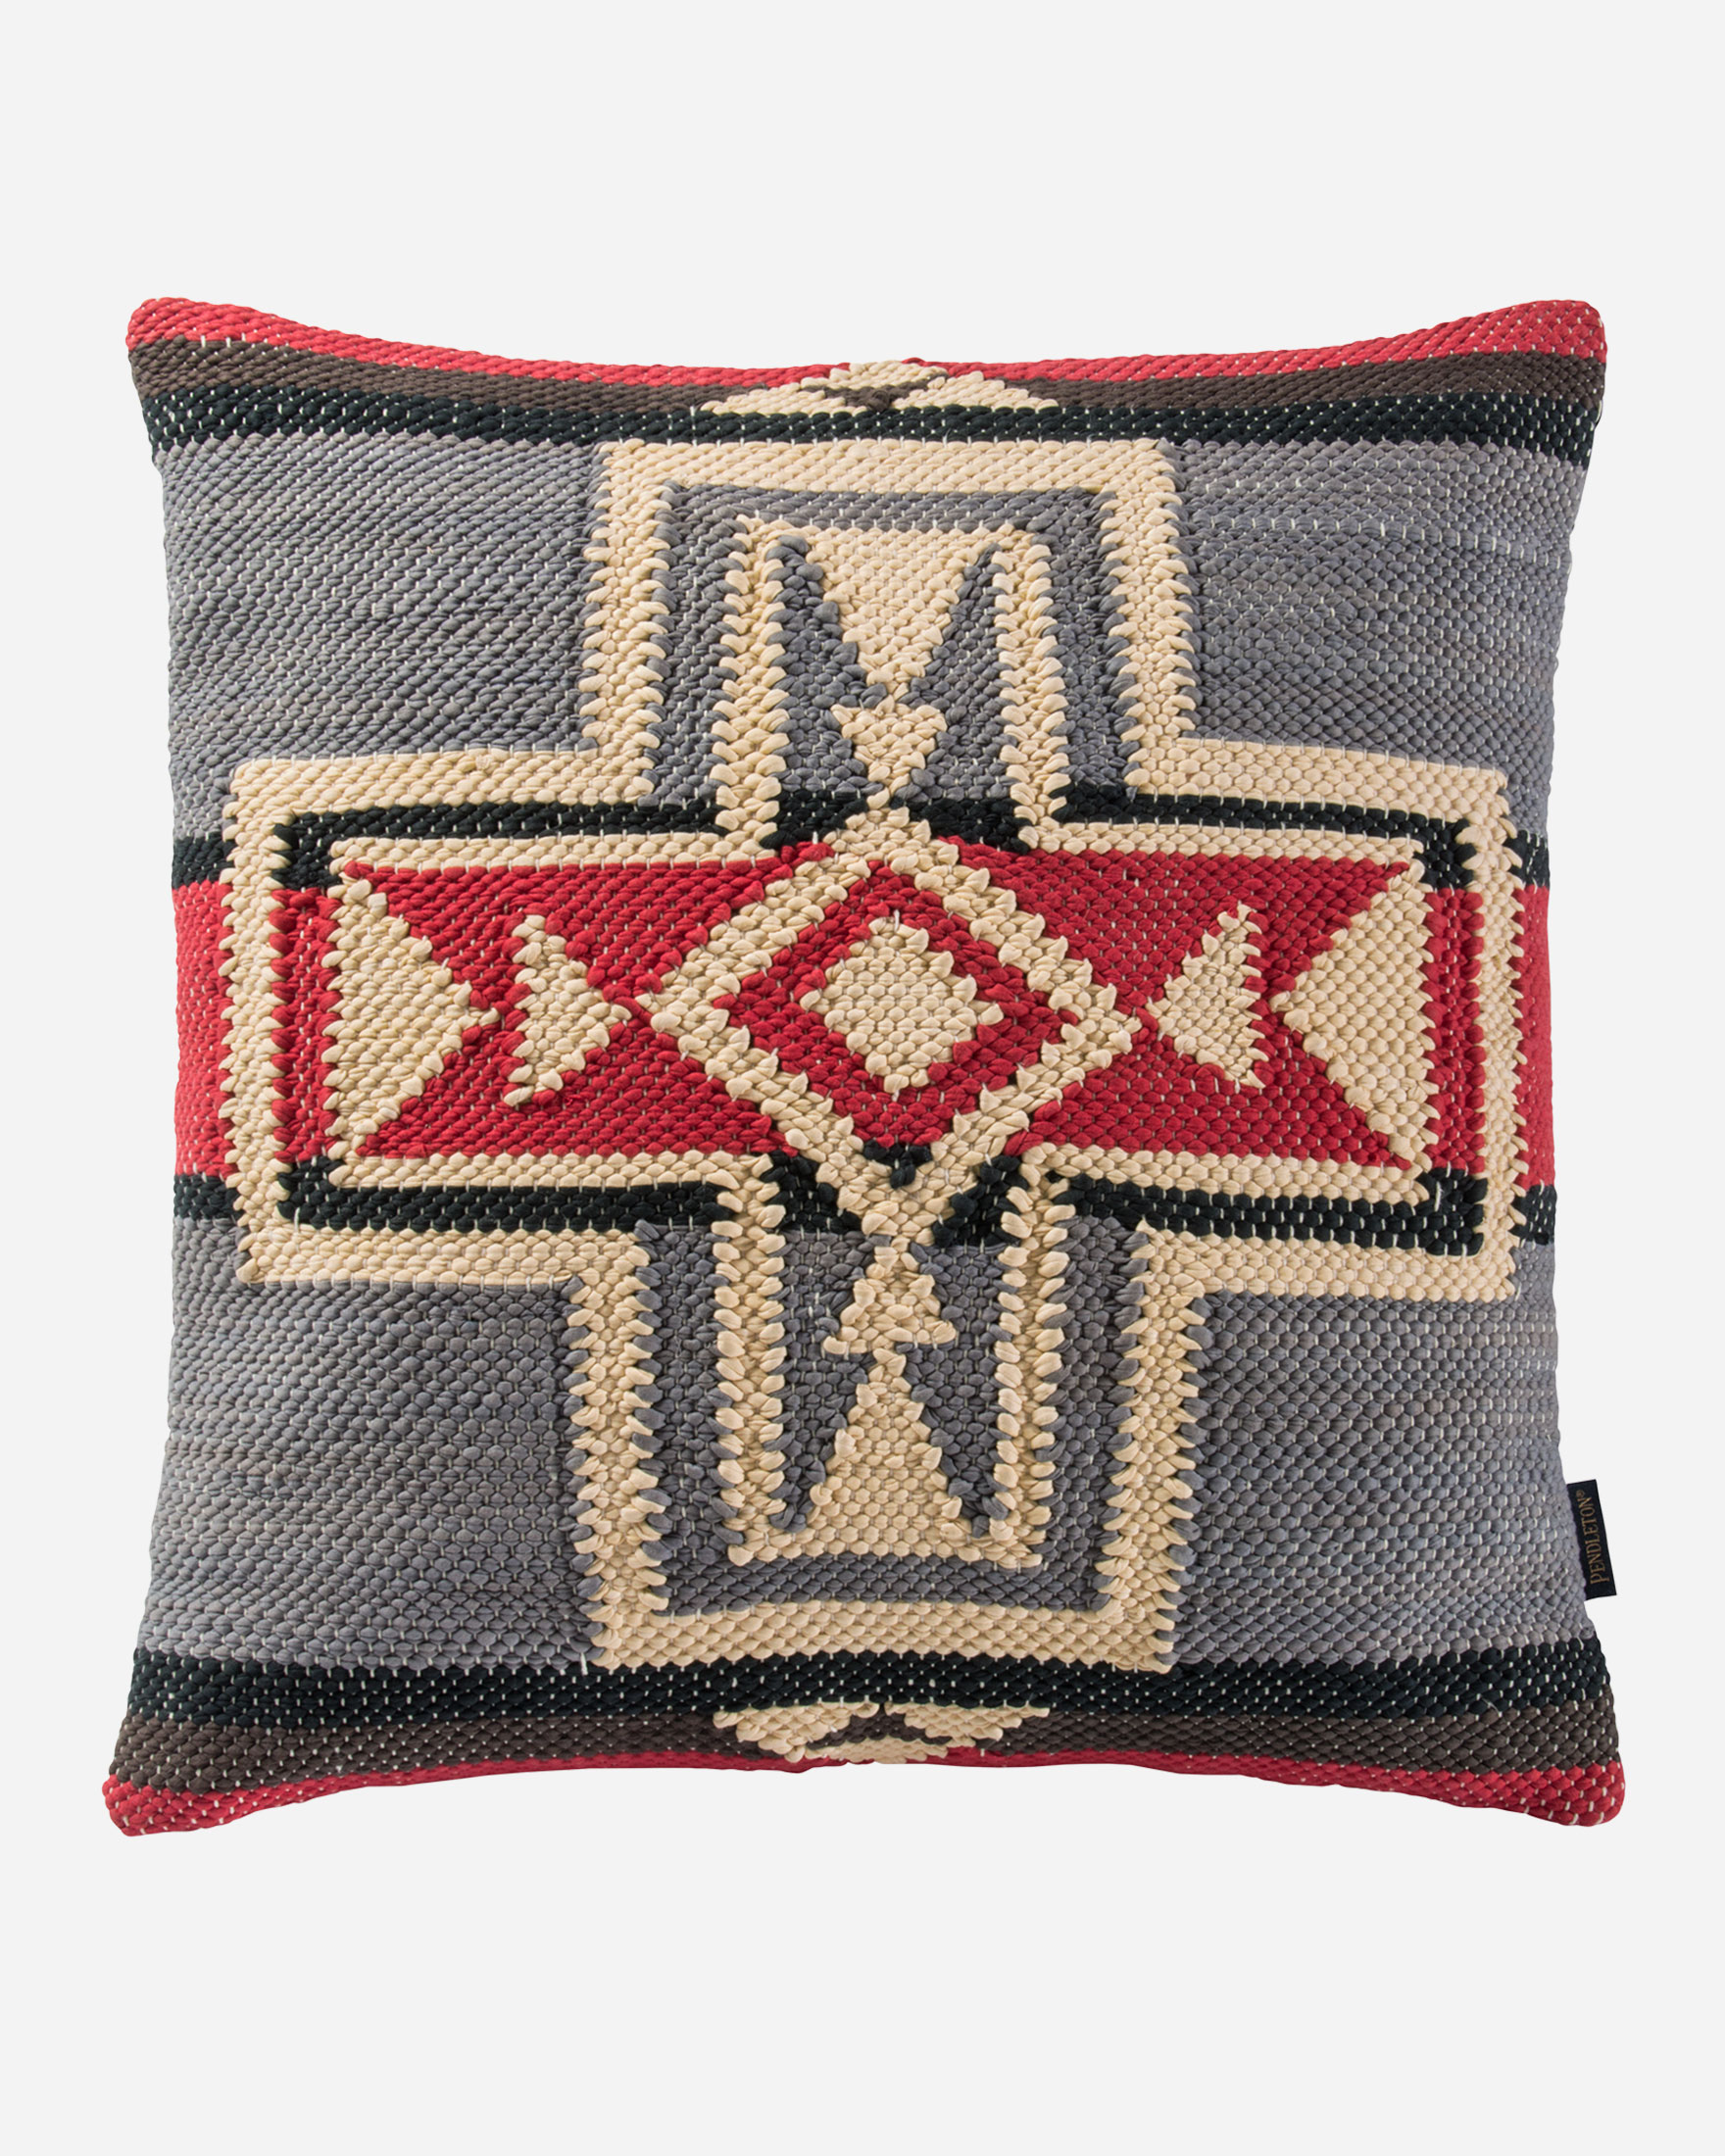 CROSSROADS WOVEN CHINDI PILLOW